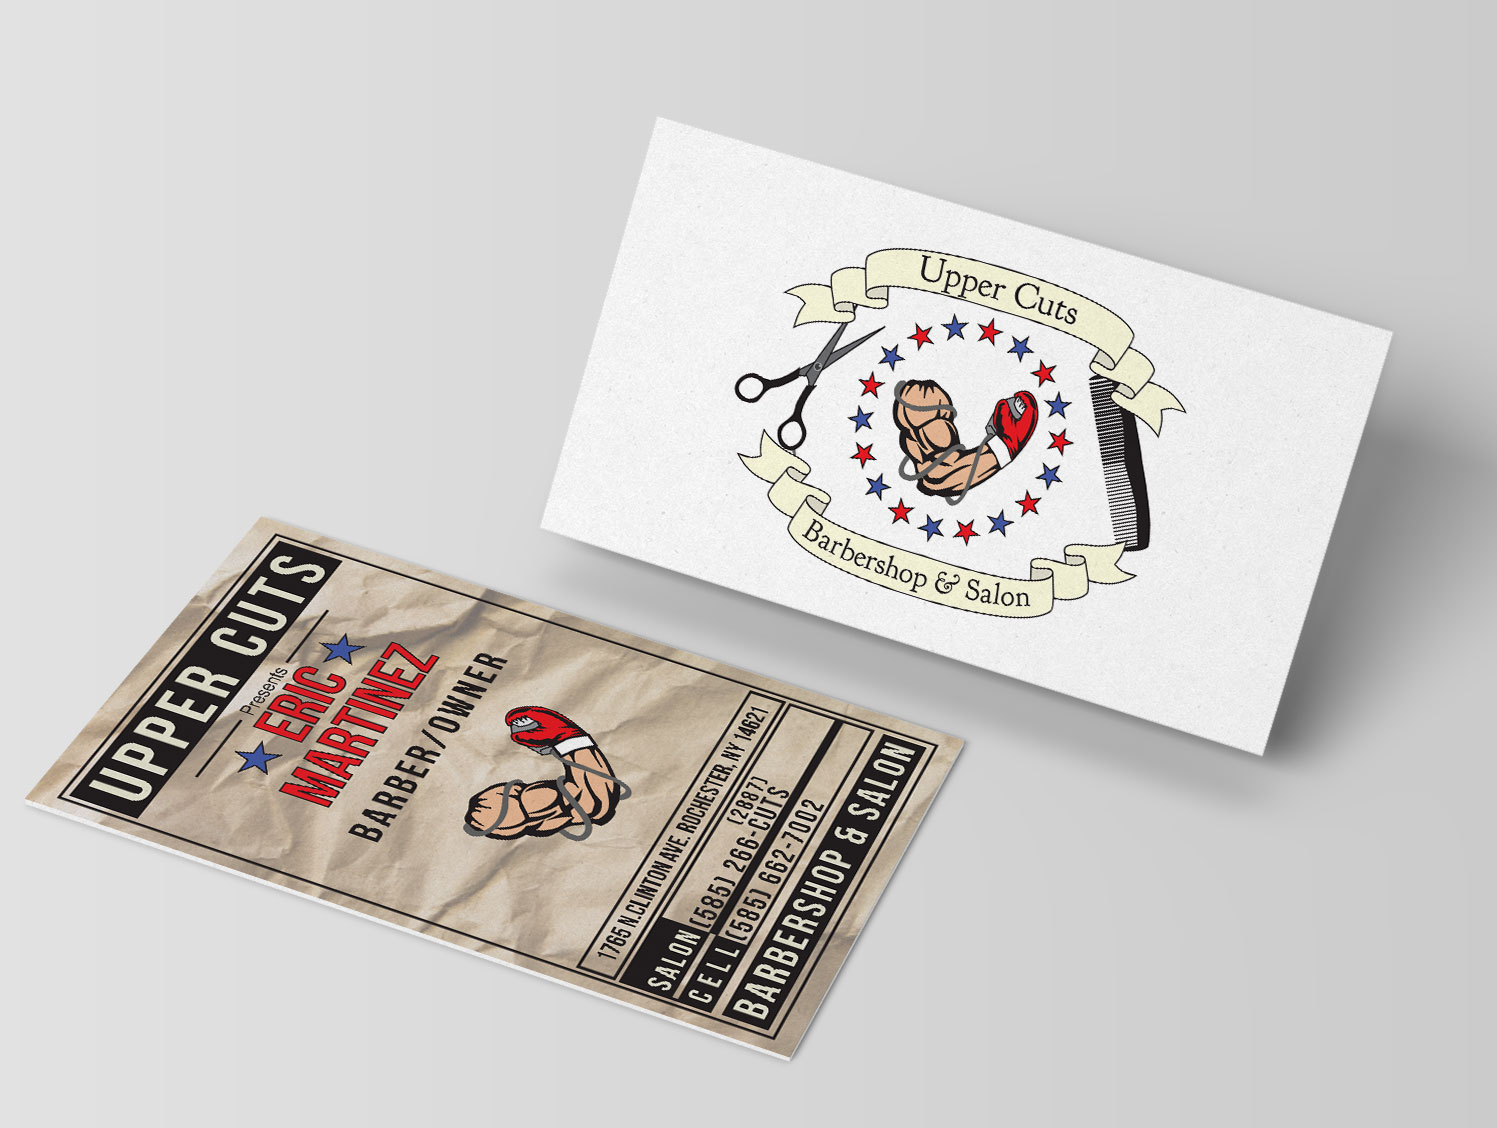 Uppercuts Barbershop & Salon Business Cards